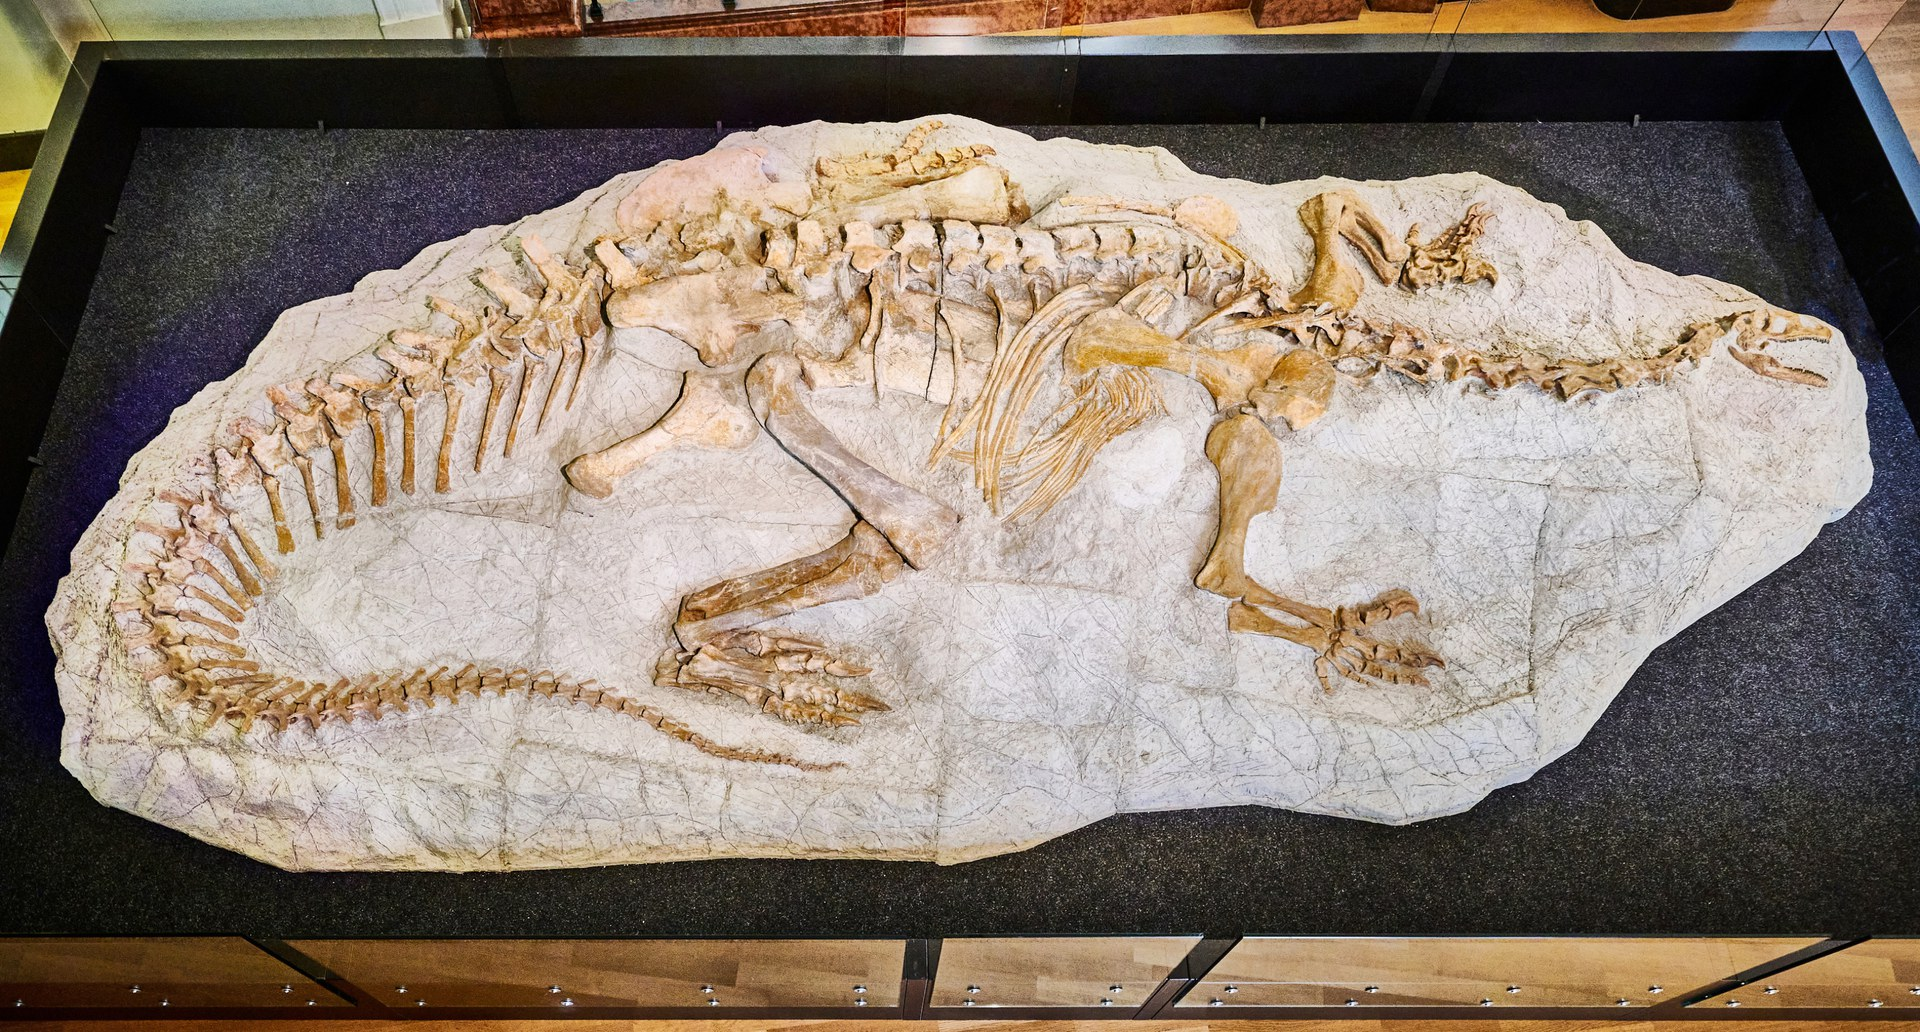 The complete fossil of a Plateosaurus trossingensis,